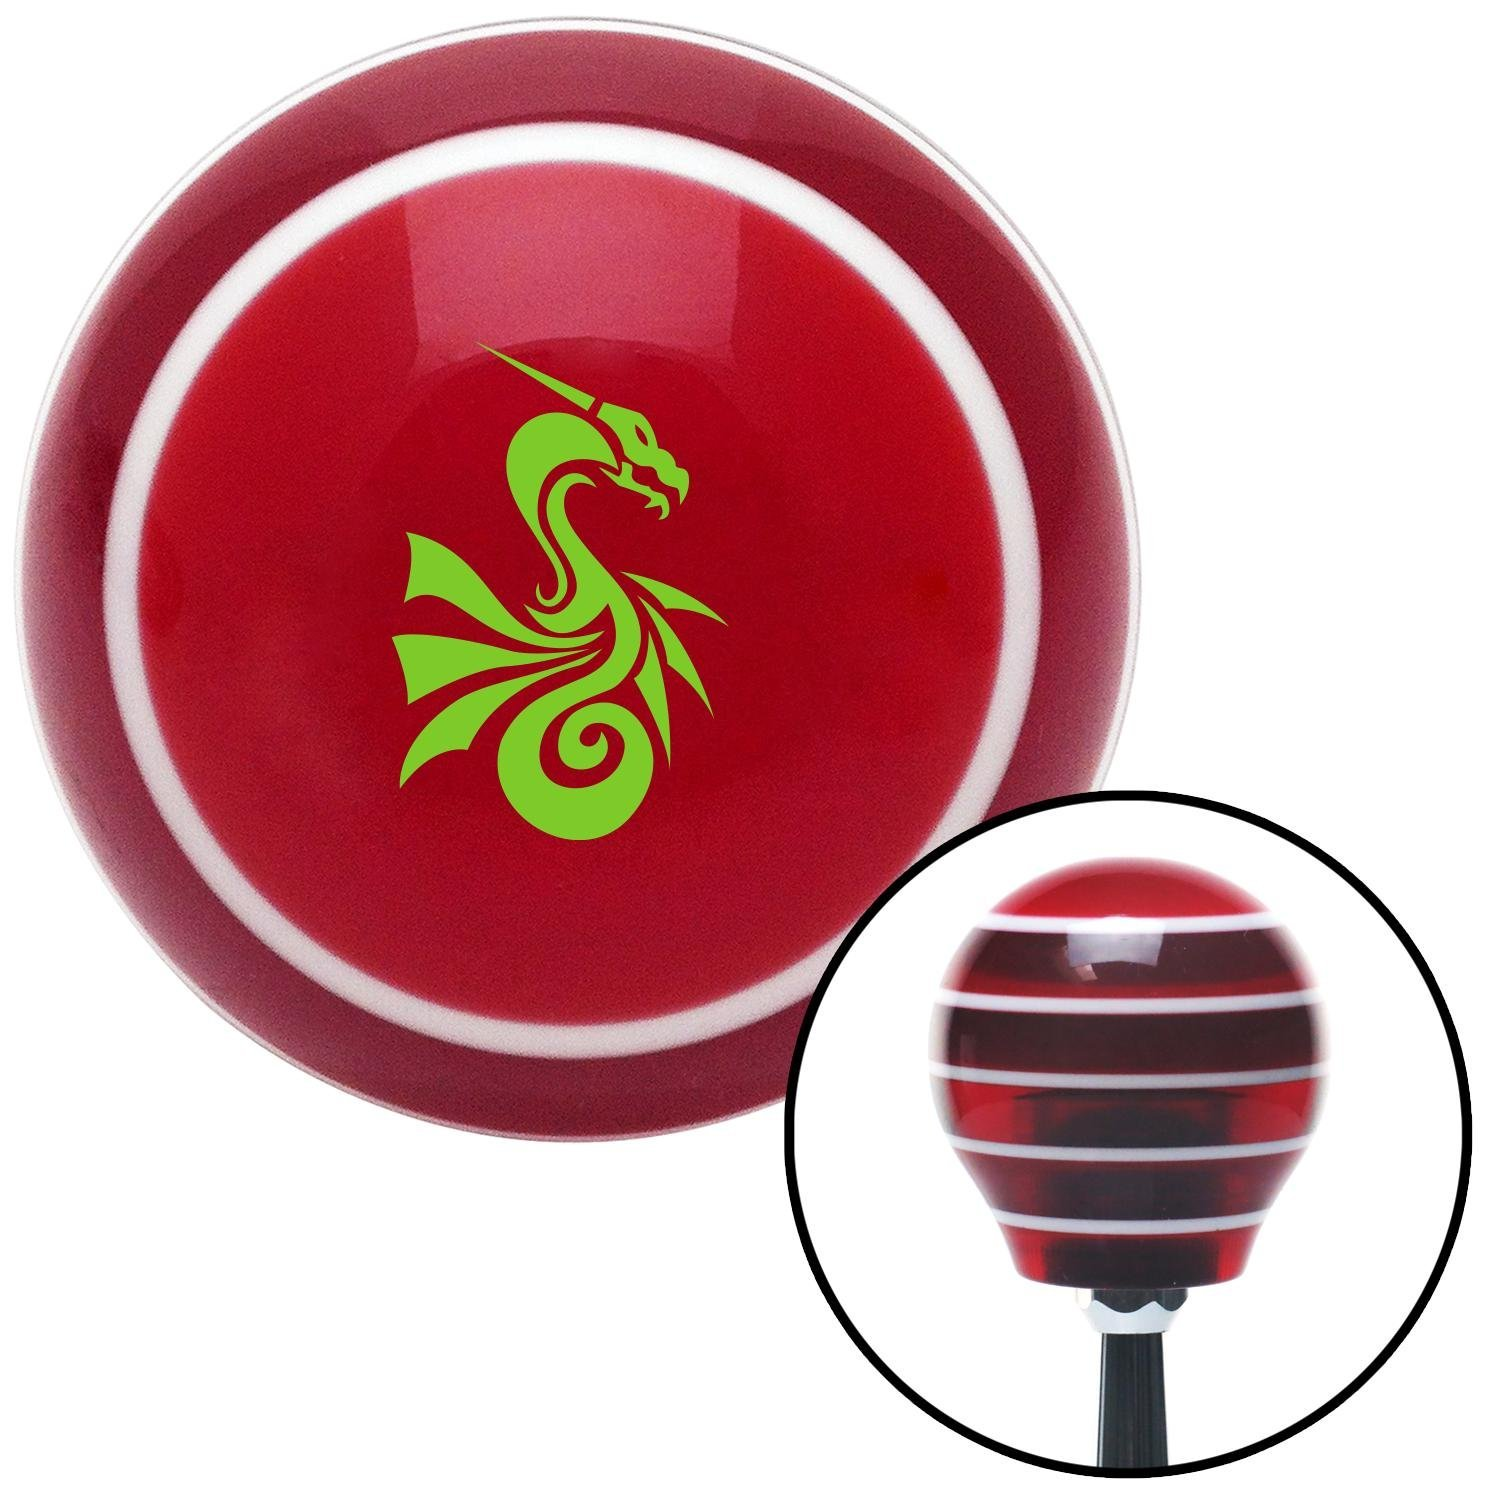 American Shifter 114030 Red Stripe Shift Knob with M16 x 1.5 Insert Green Dragon Serpent